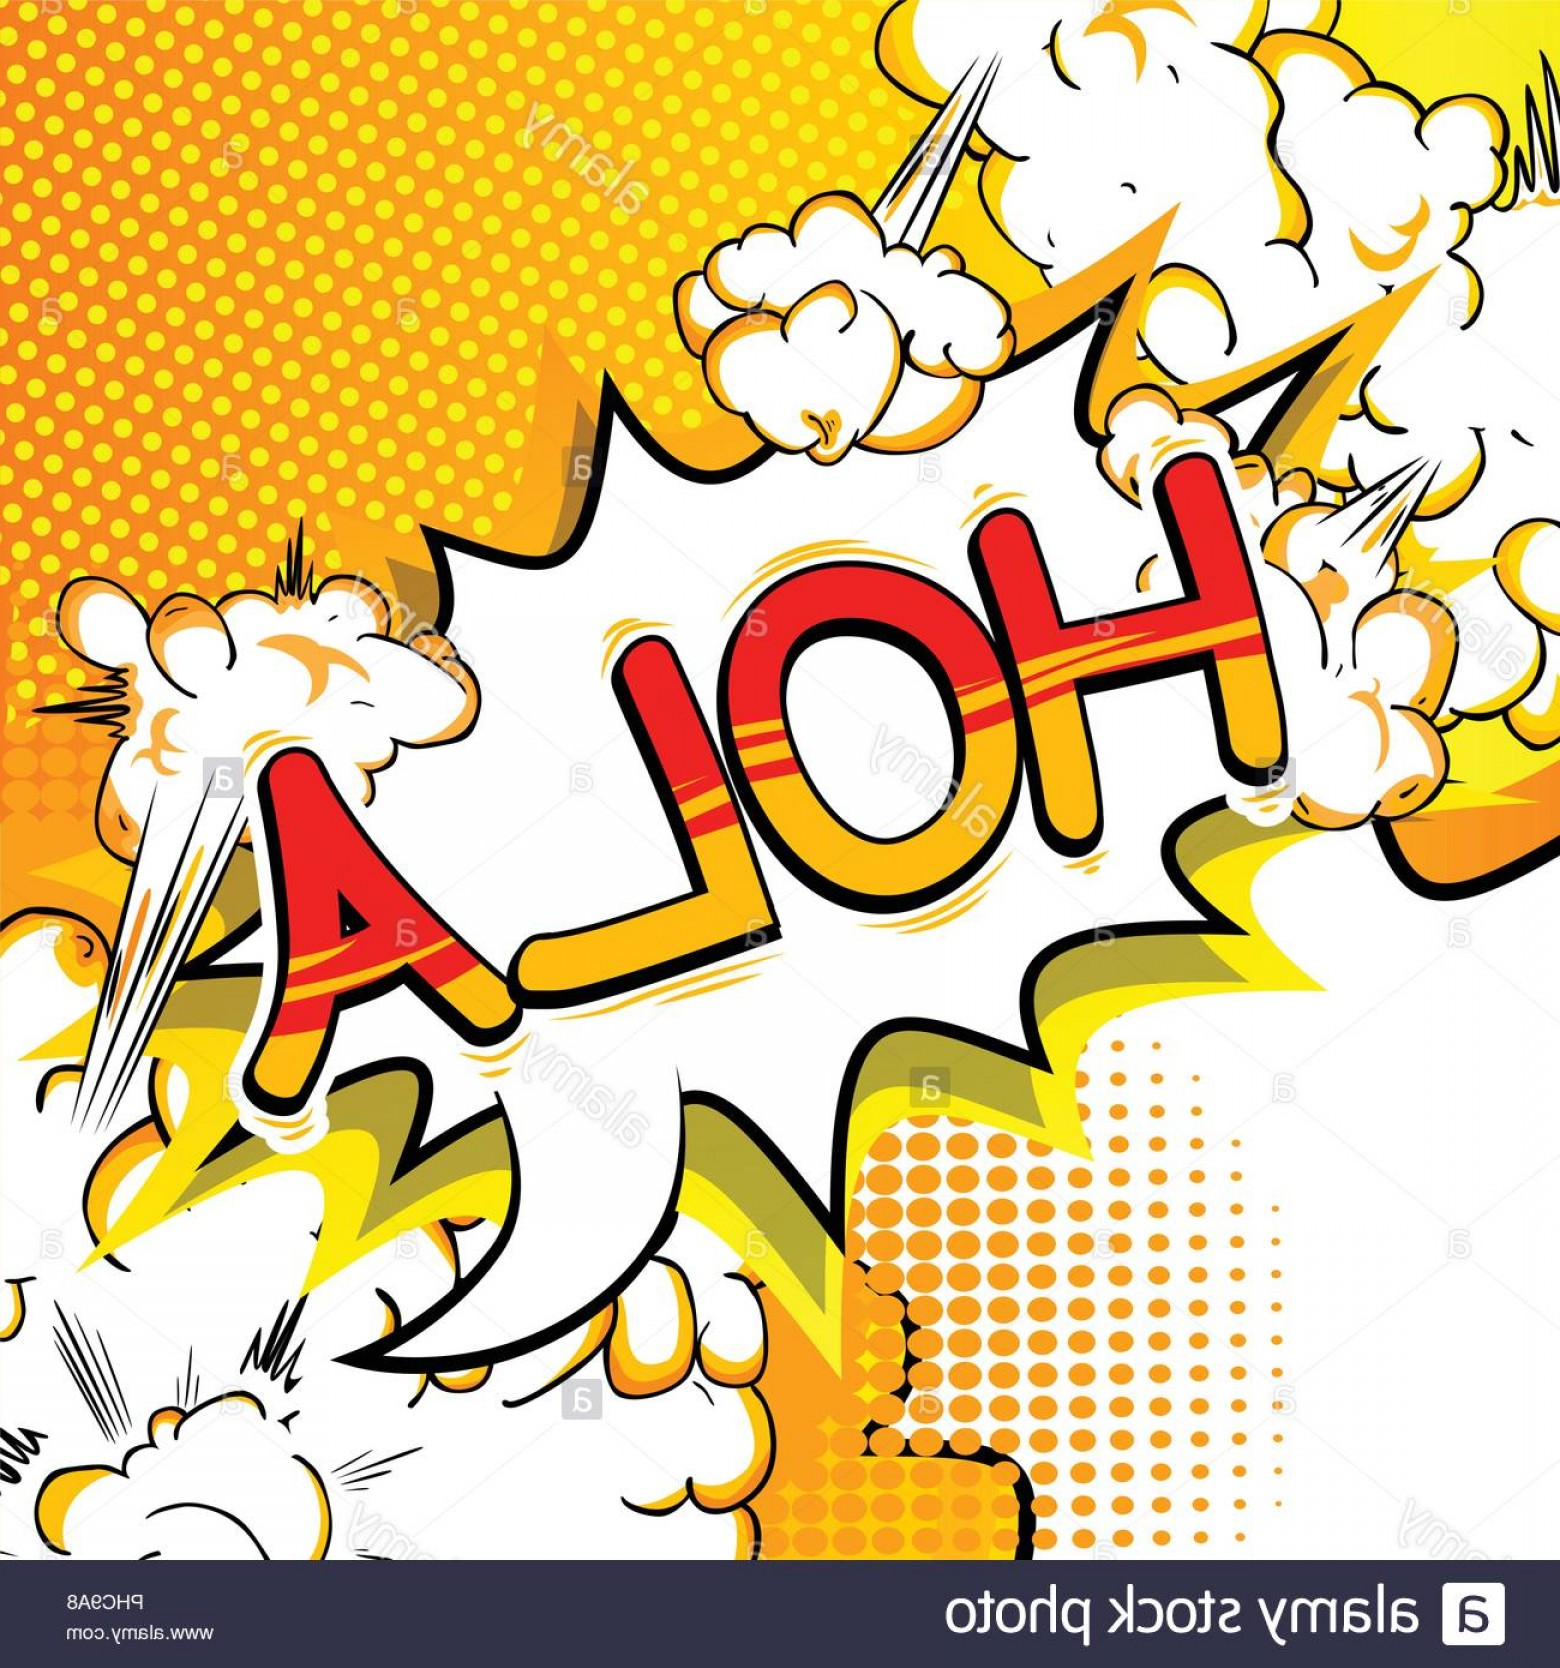 Spanish Vector Art: Hola Hello In Spanish Vector Illustrated Comic Book Style Phrase Image